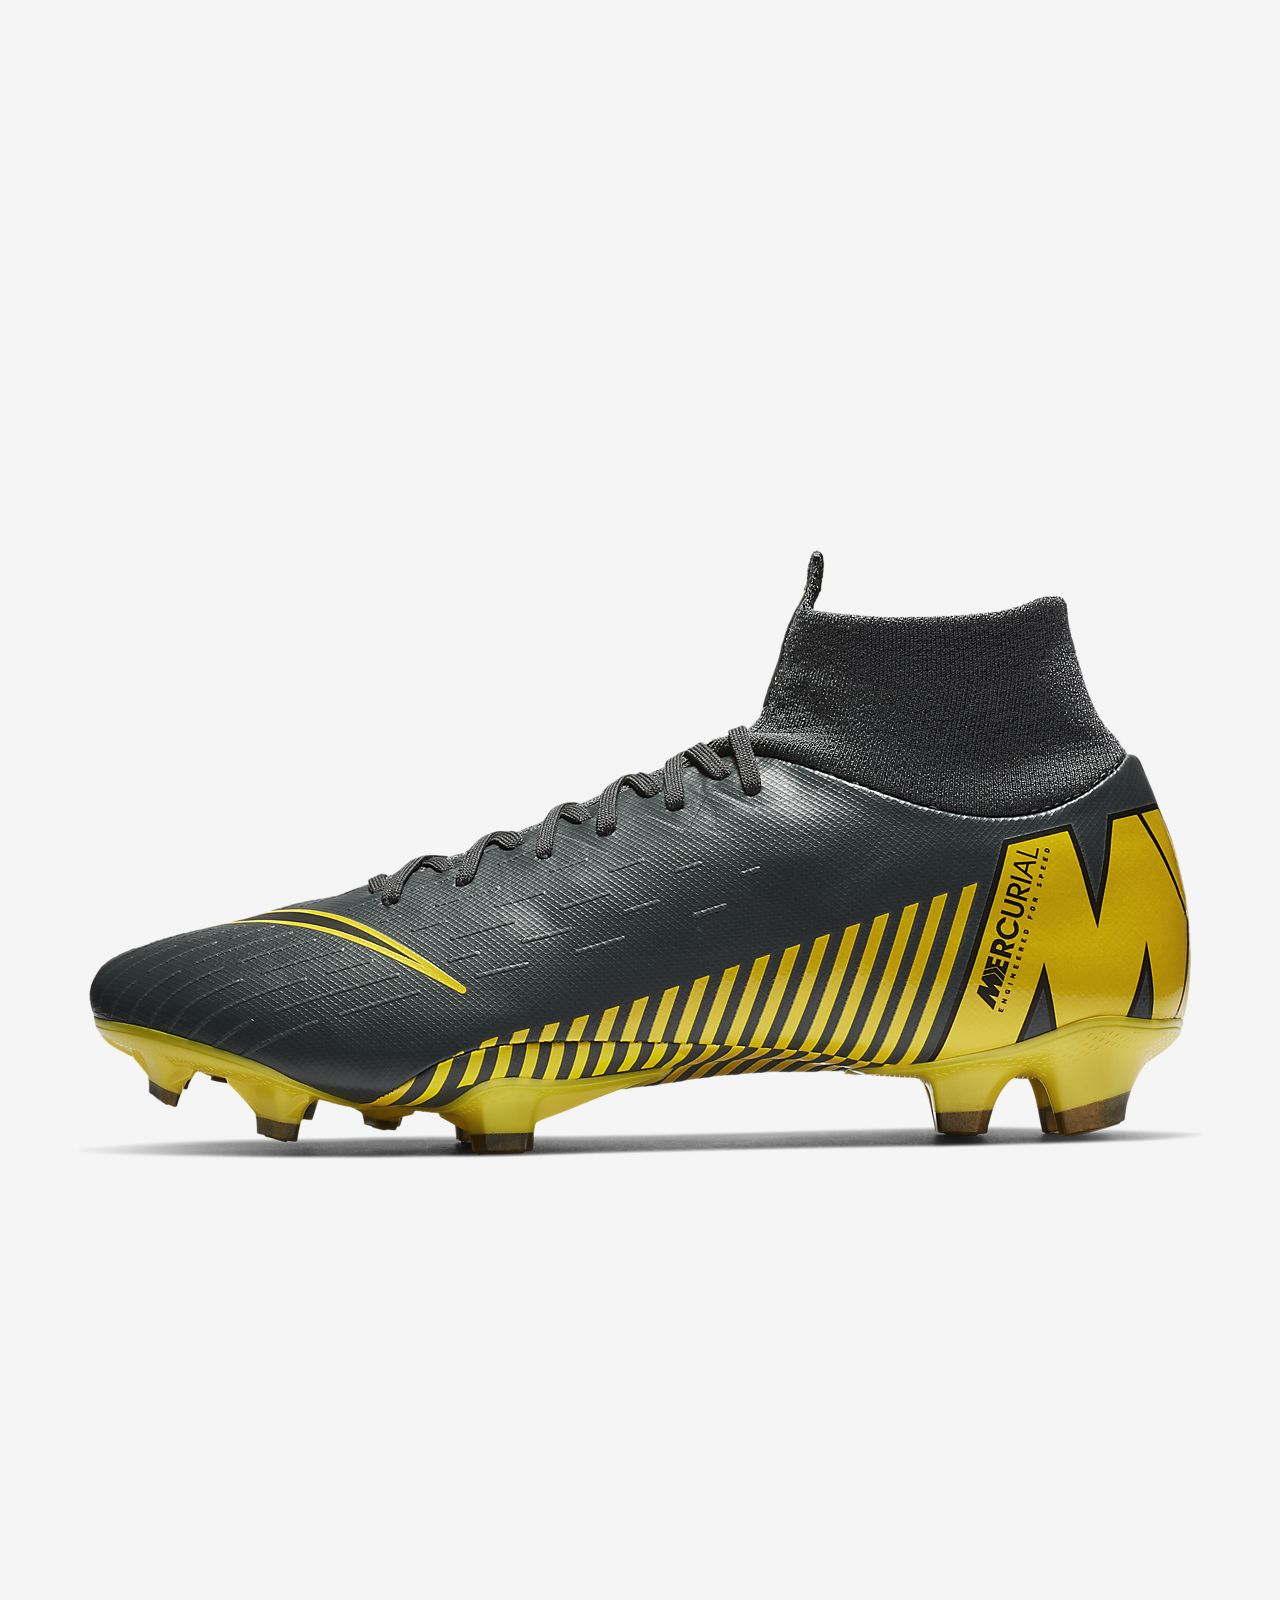 88d32c7c88e8 Nike Superfly 6 Pro FG Firm-Ground Football Boot. Nike.com CA